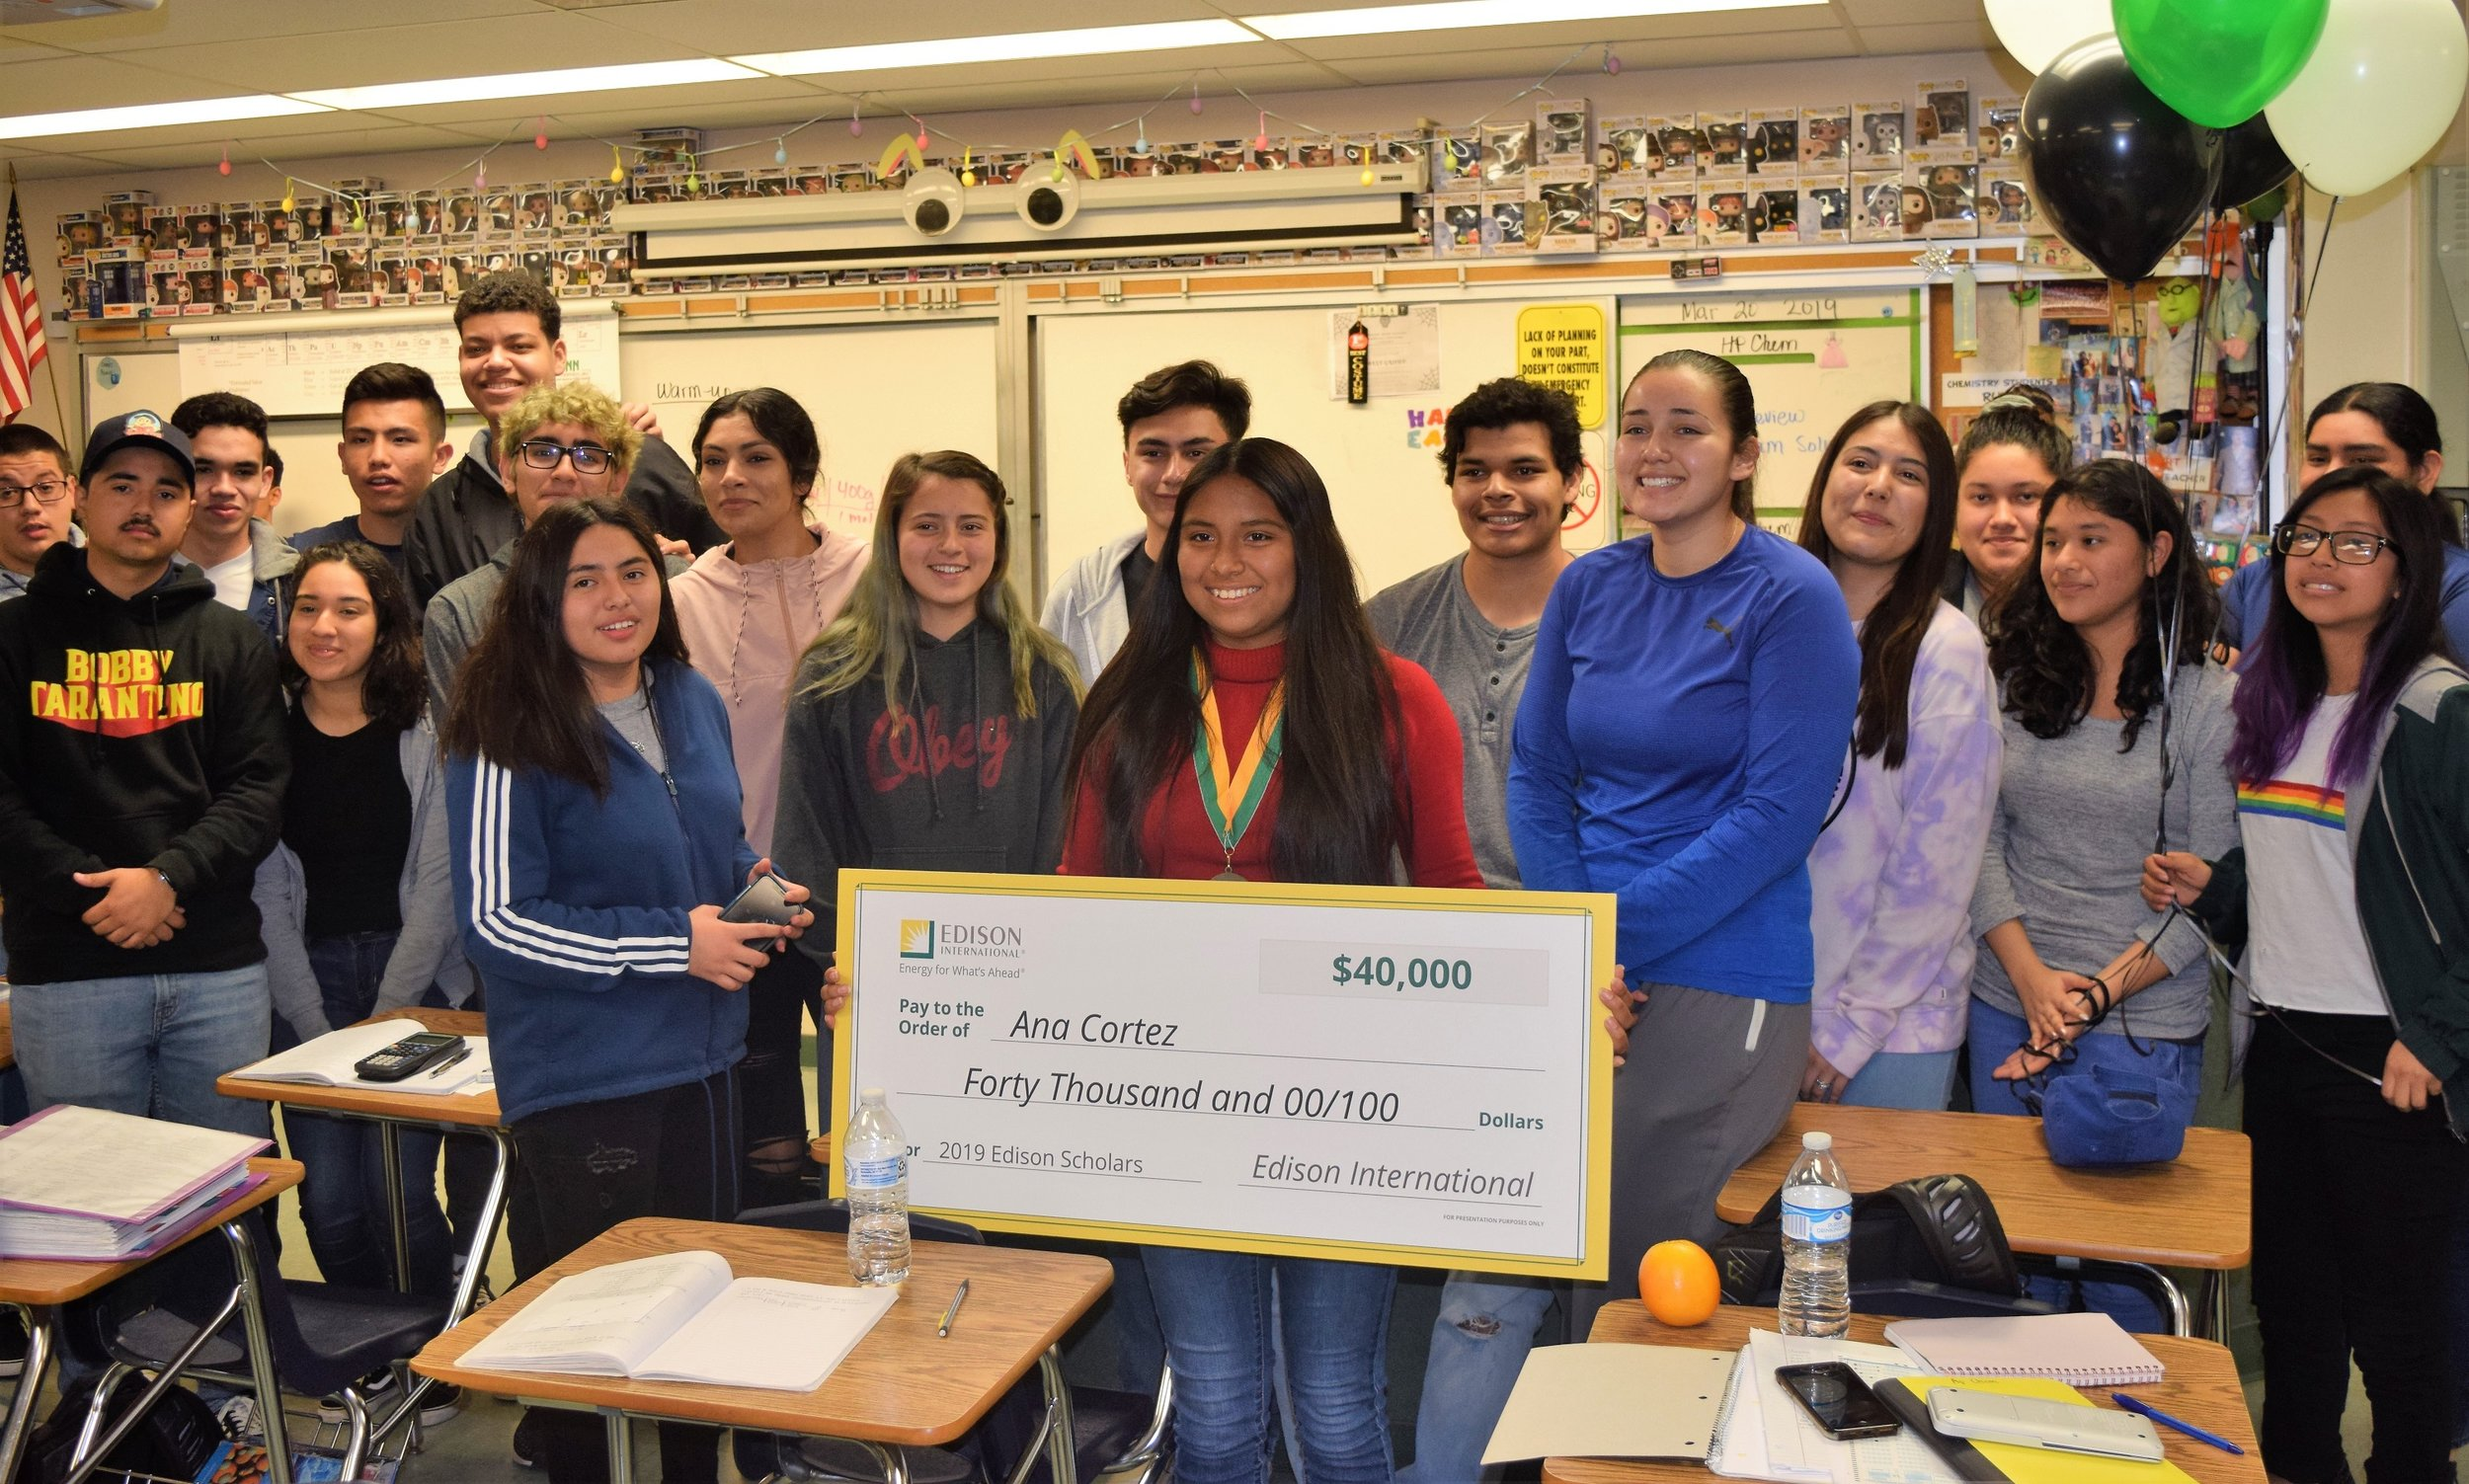 Pioneer High School senior Anna Cortez was surprised with a $40,000 Edison scholarship while sitting in her AP Chemistry class on March 20, surrounded by friends, classmates and teachers. She is one of 30 Southern California students selected for the prize.